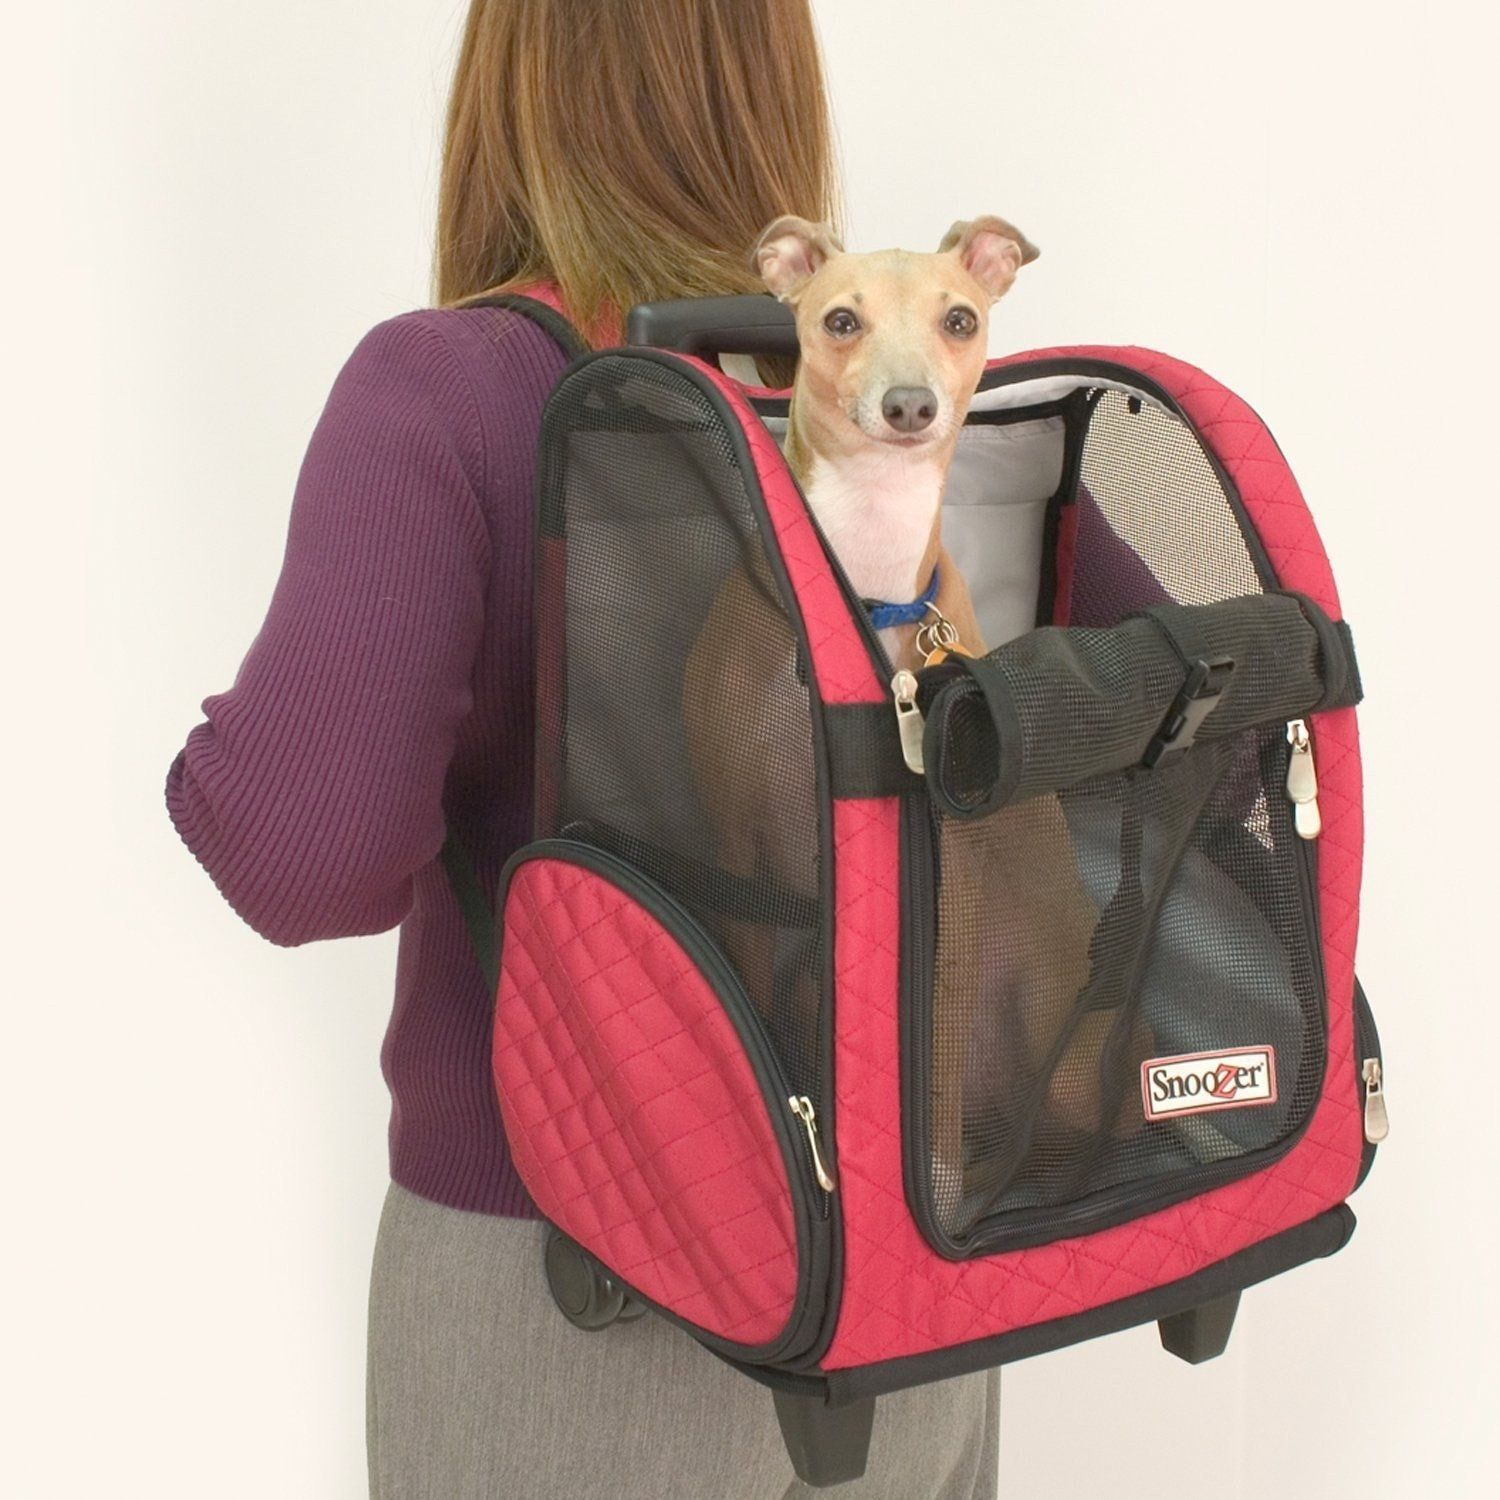 Roll Around Travel Dog Carrier Backpack Akc Dog Gear And